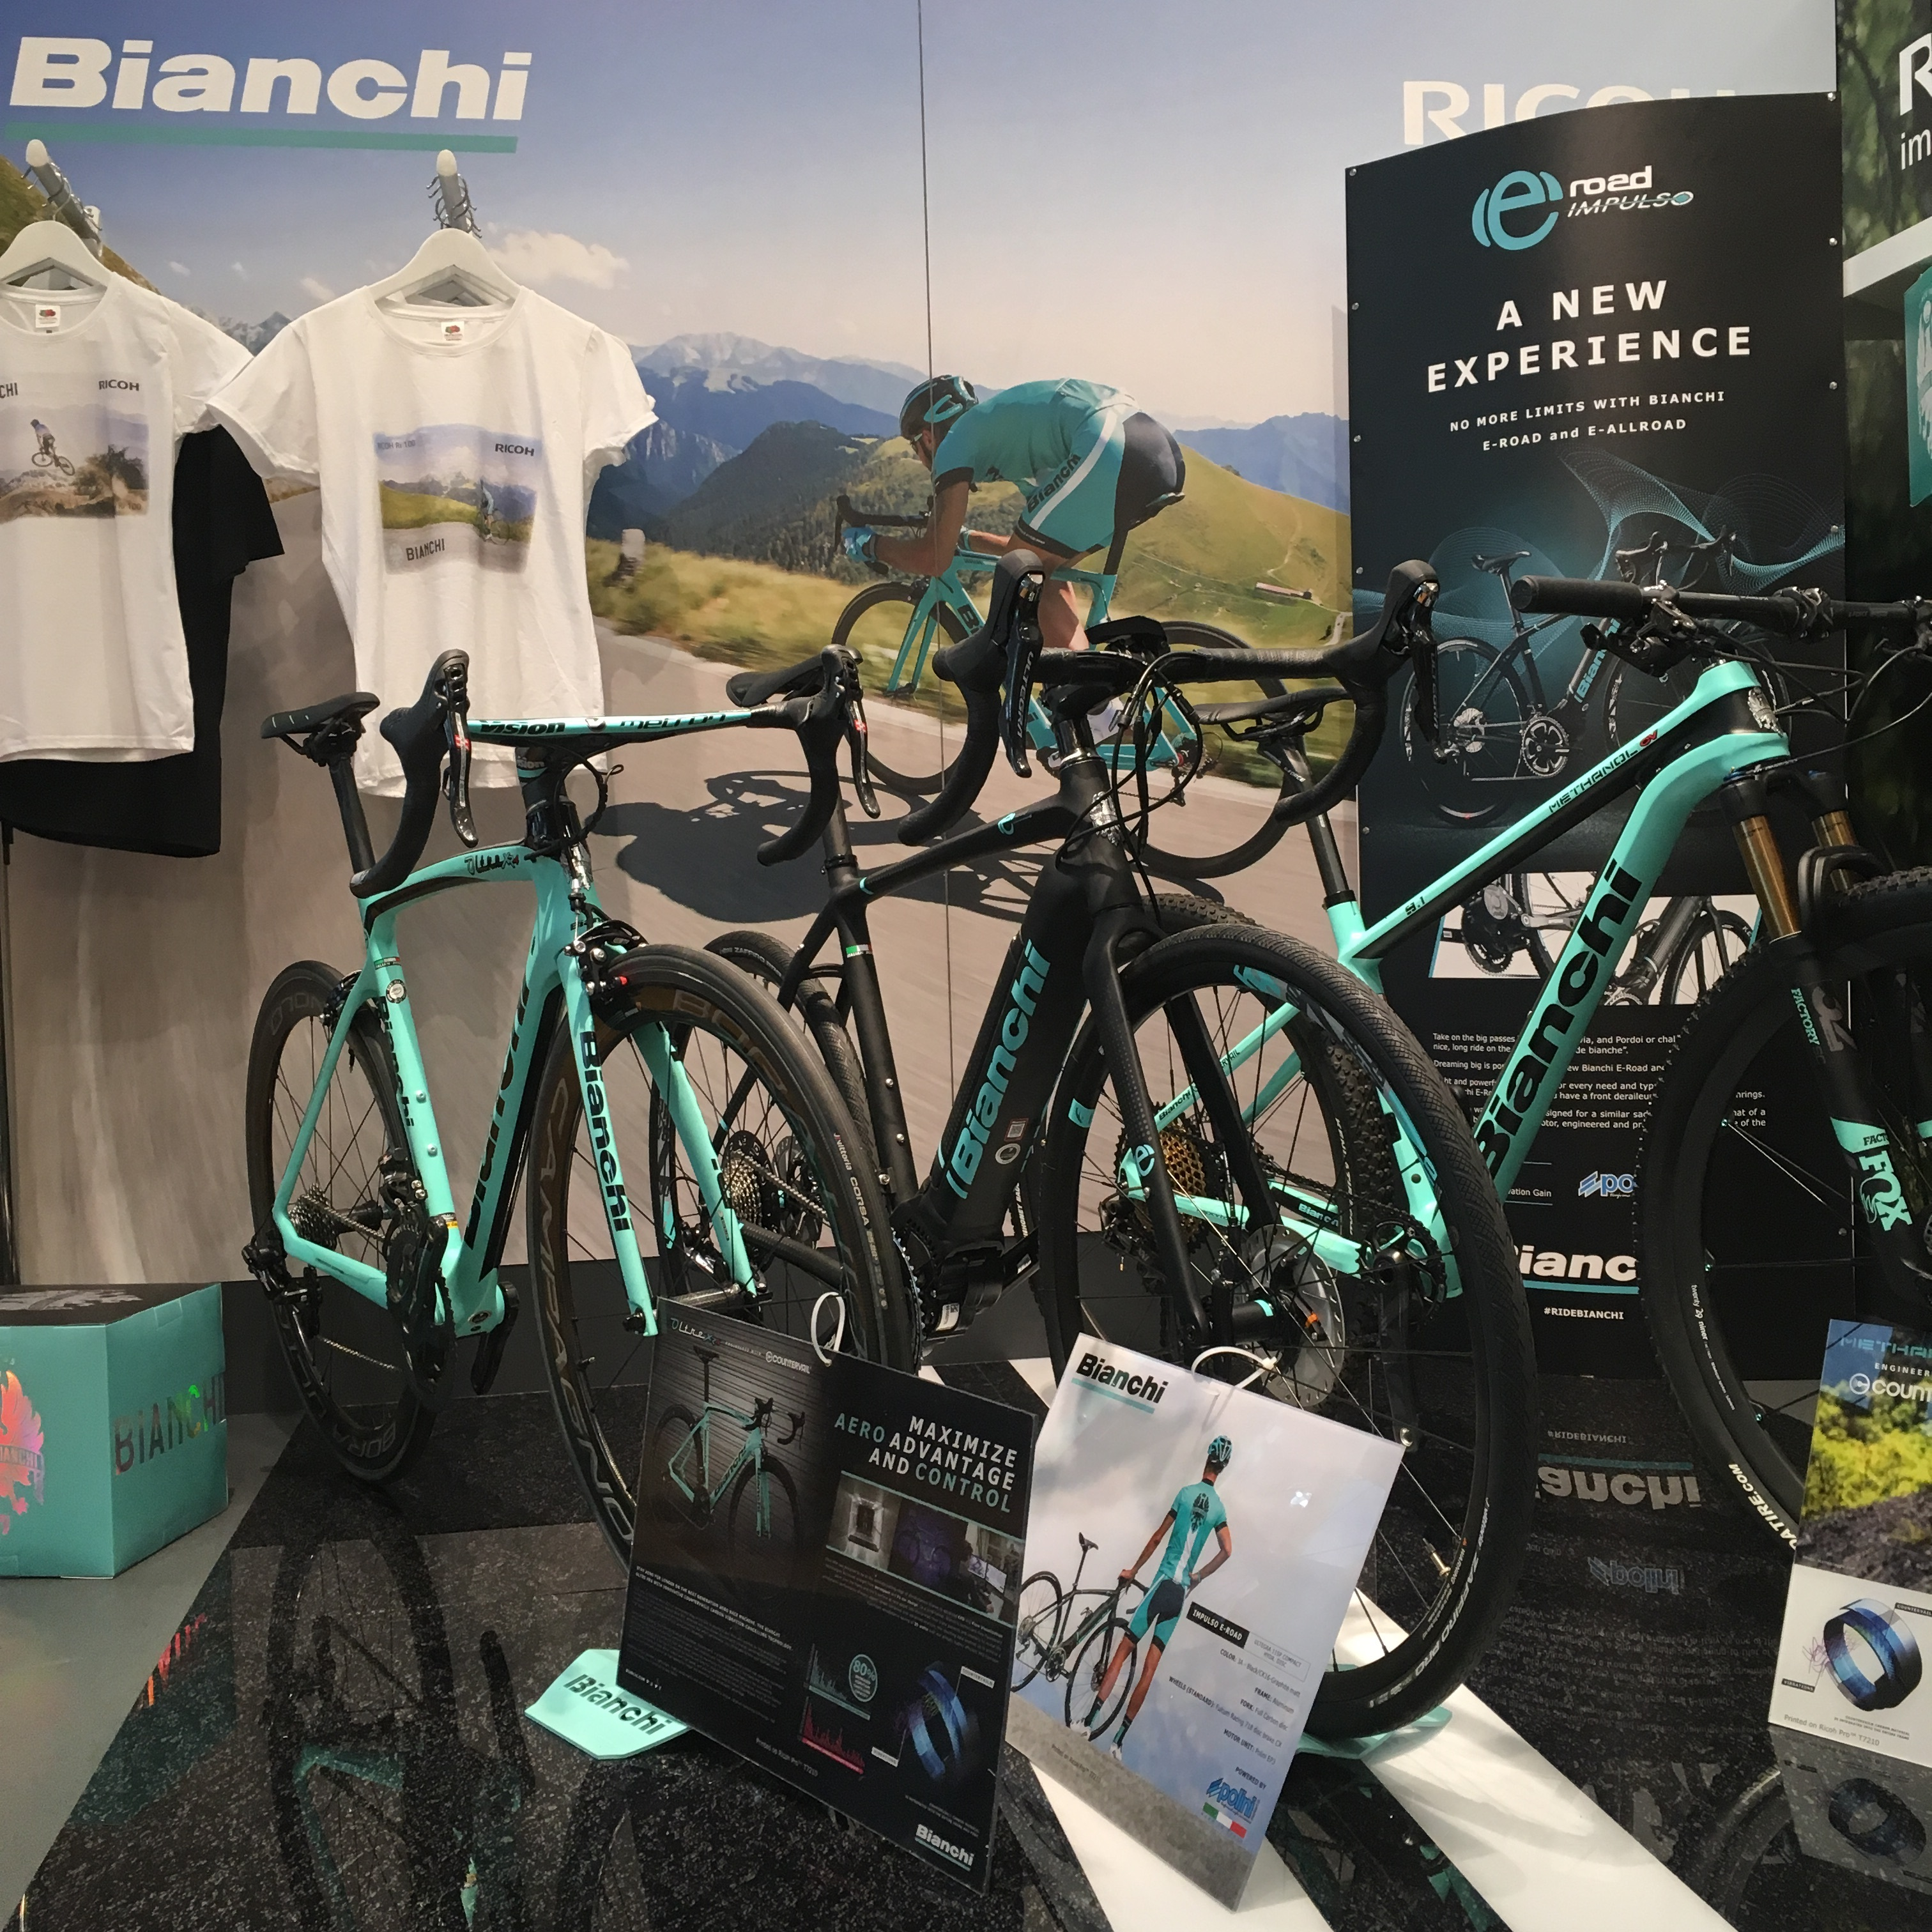 Ricoh's broad portfolio of solutions showcased The Power of Colour and created Bianchi Corner